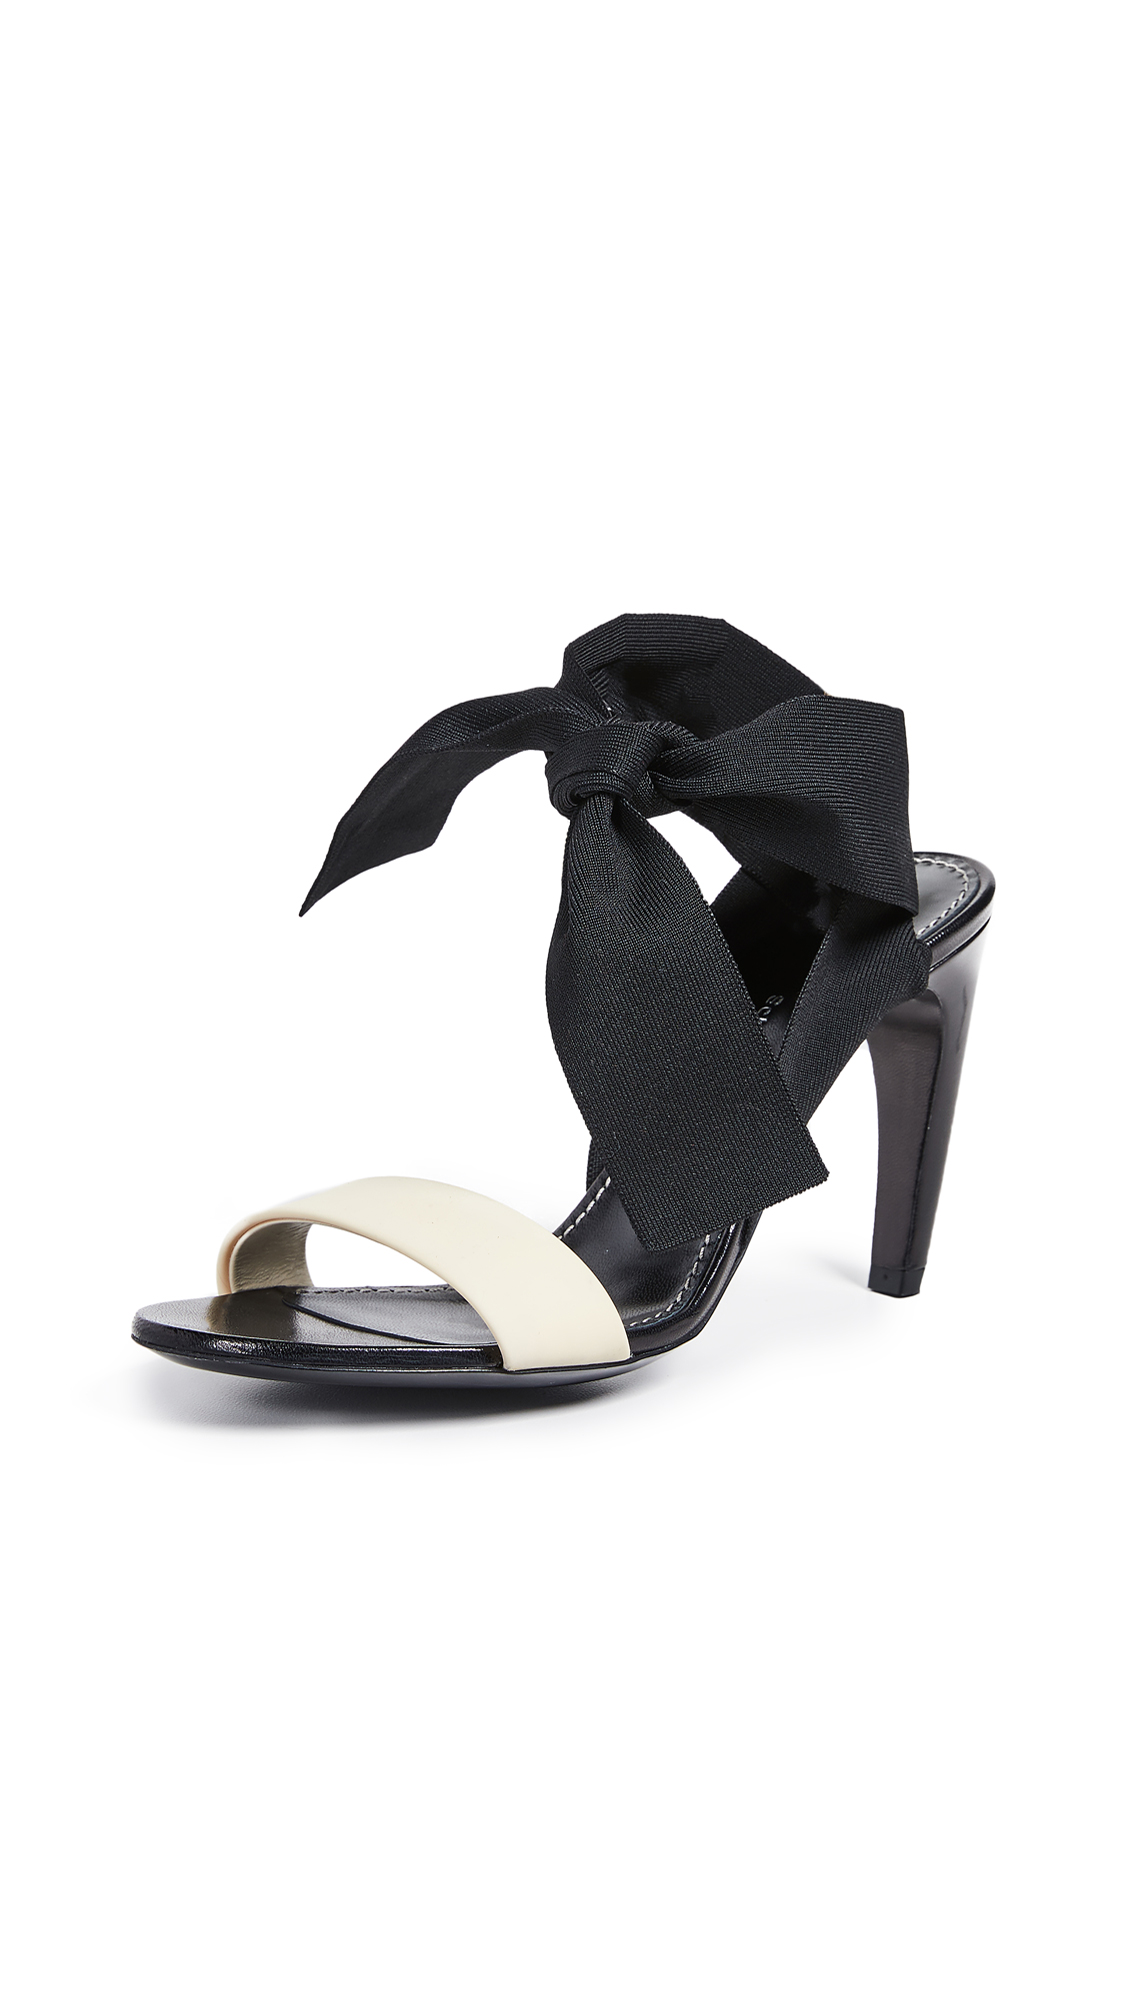 Proenza Schouler Knit Strap Sandals - Black/Cream